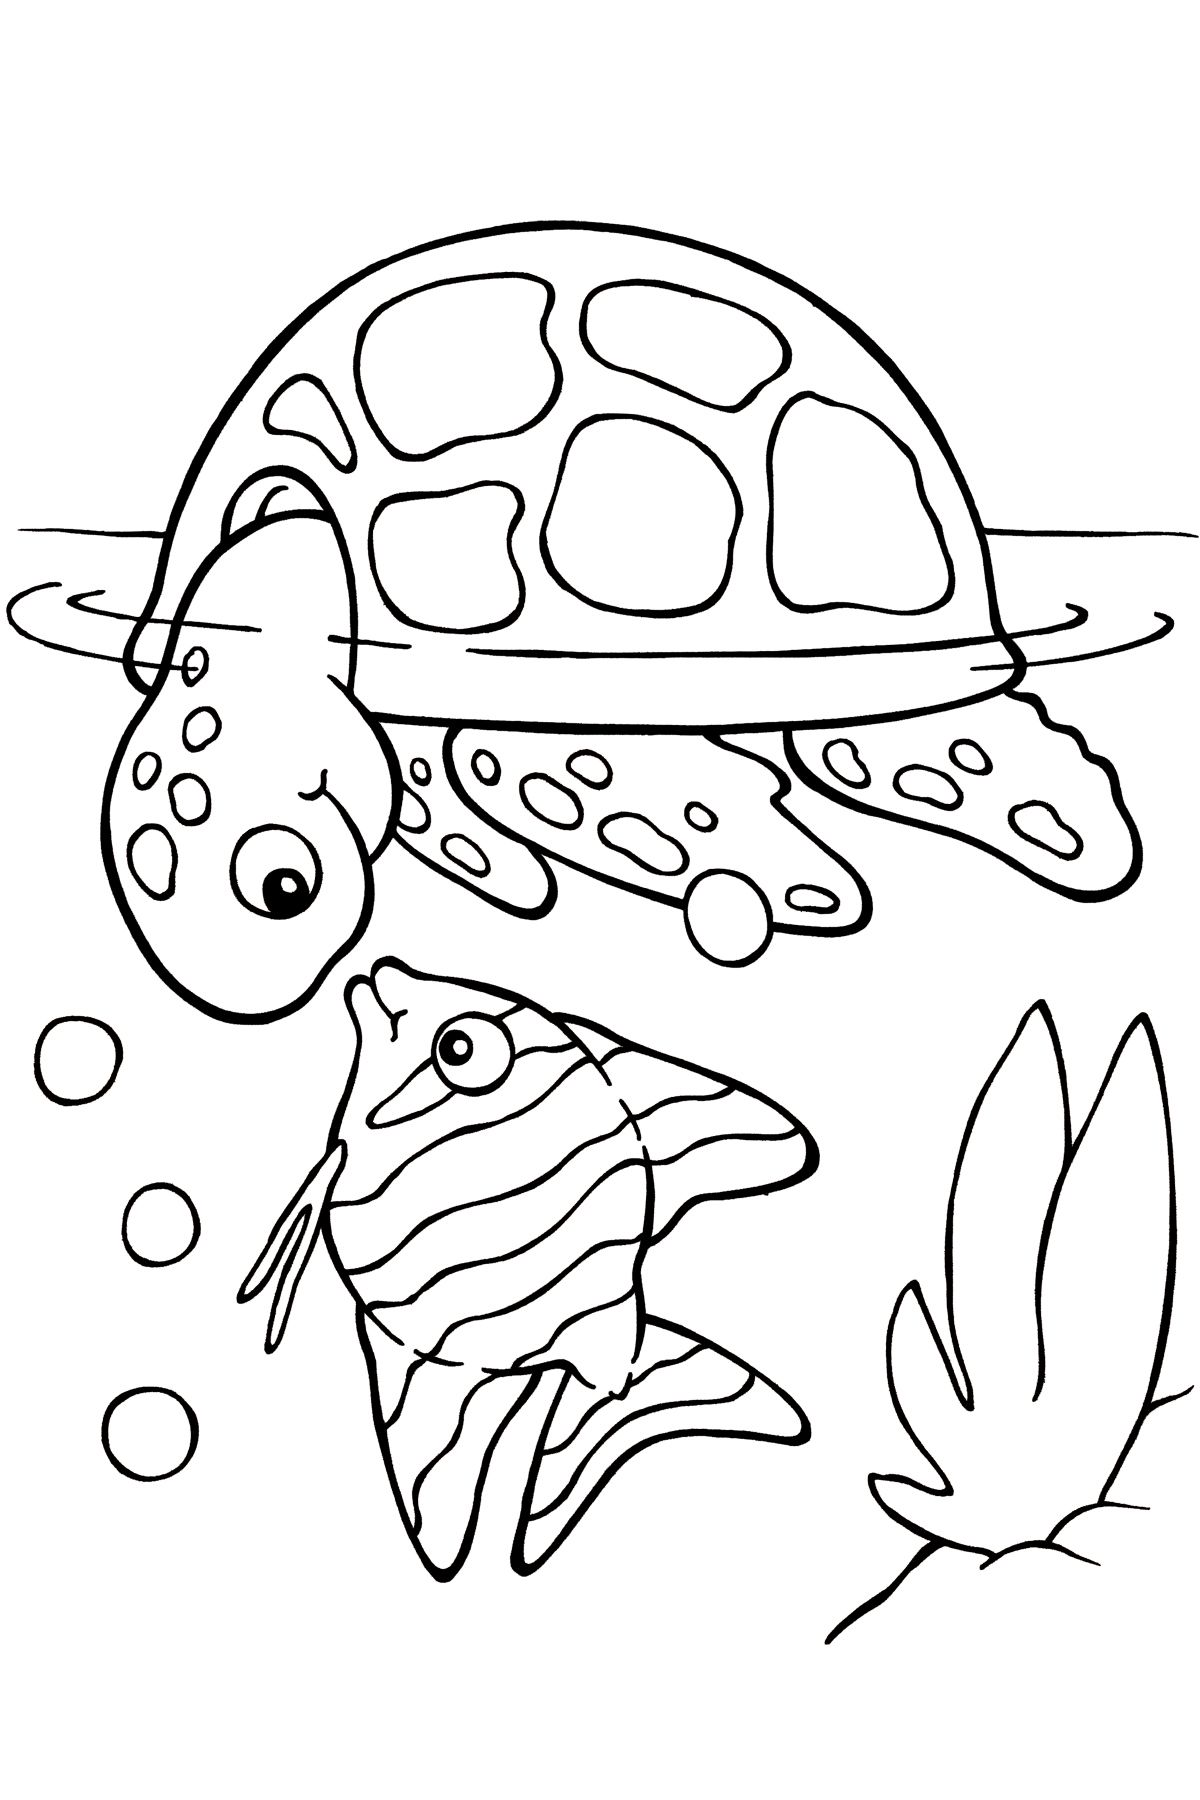 Coloring Page Coloring Pinterest Turtle Spring Colors And